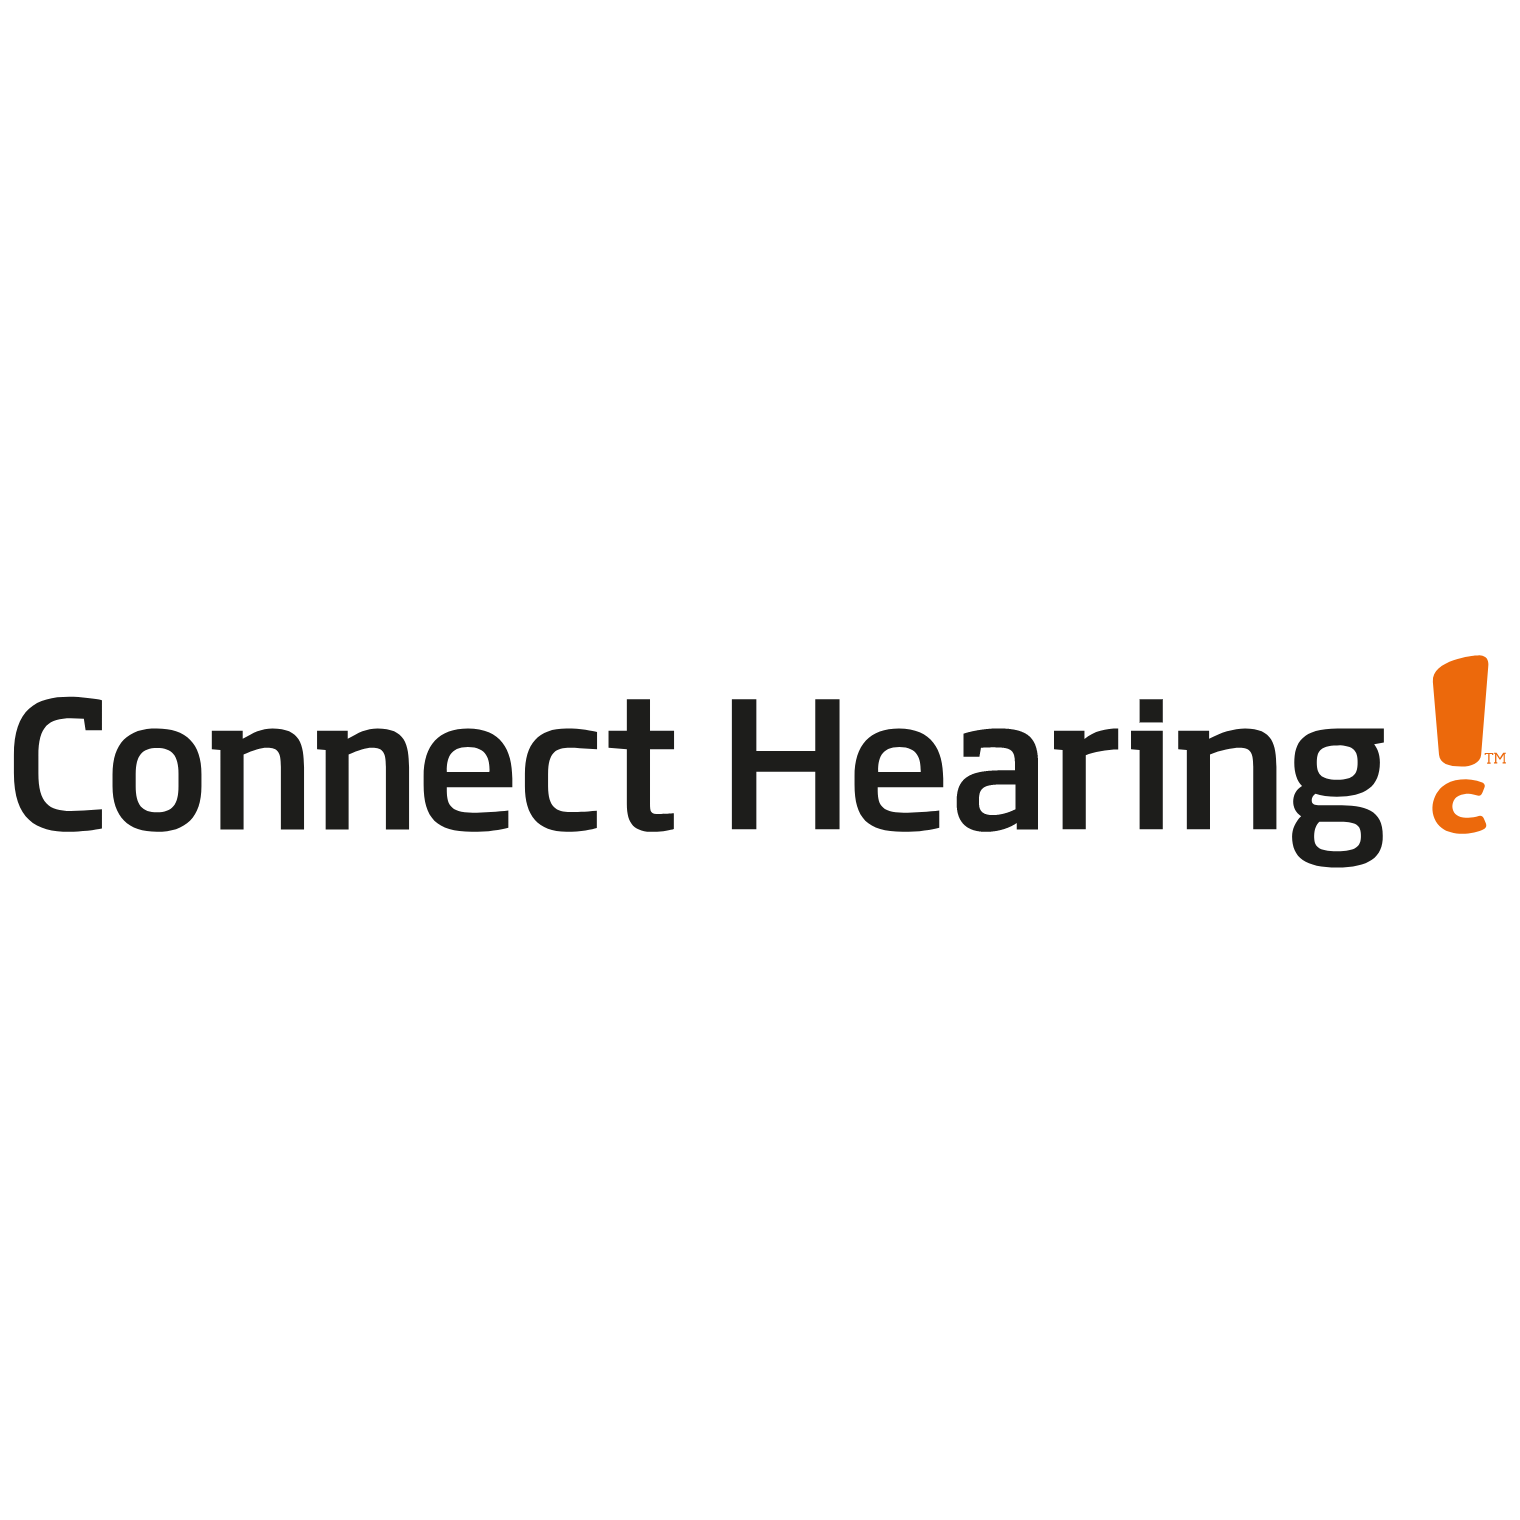 Connect Hearing - South Melbourne, VIC 3205 - (03) 9656 2250 | ShowMeLocal.com